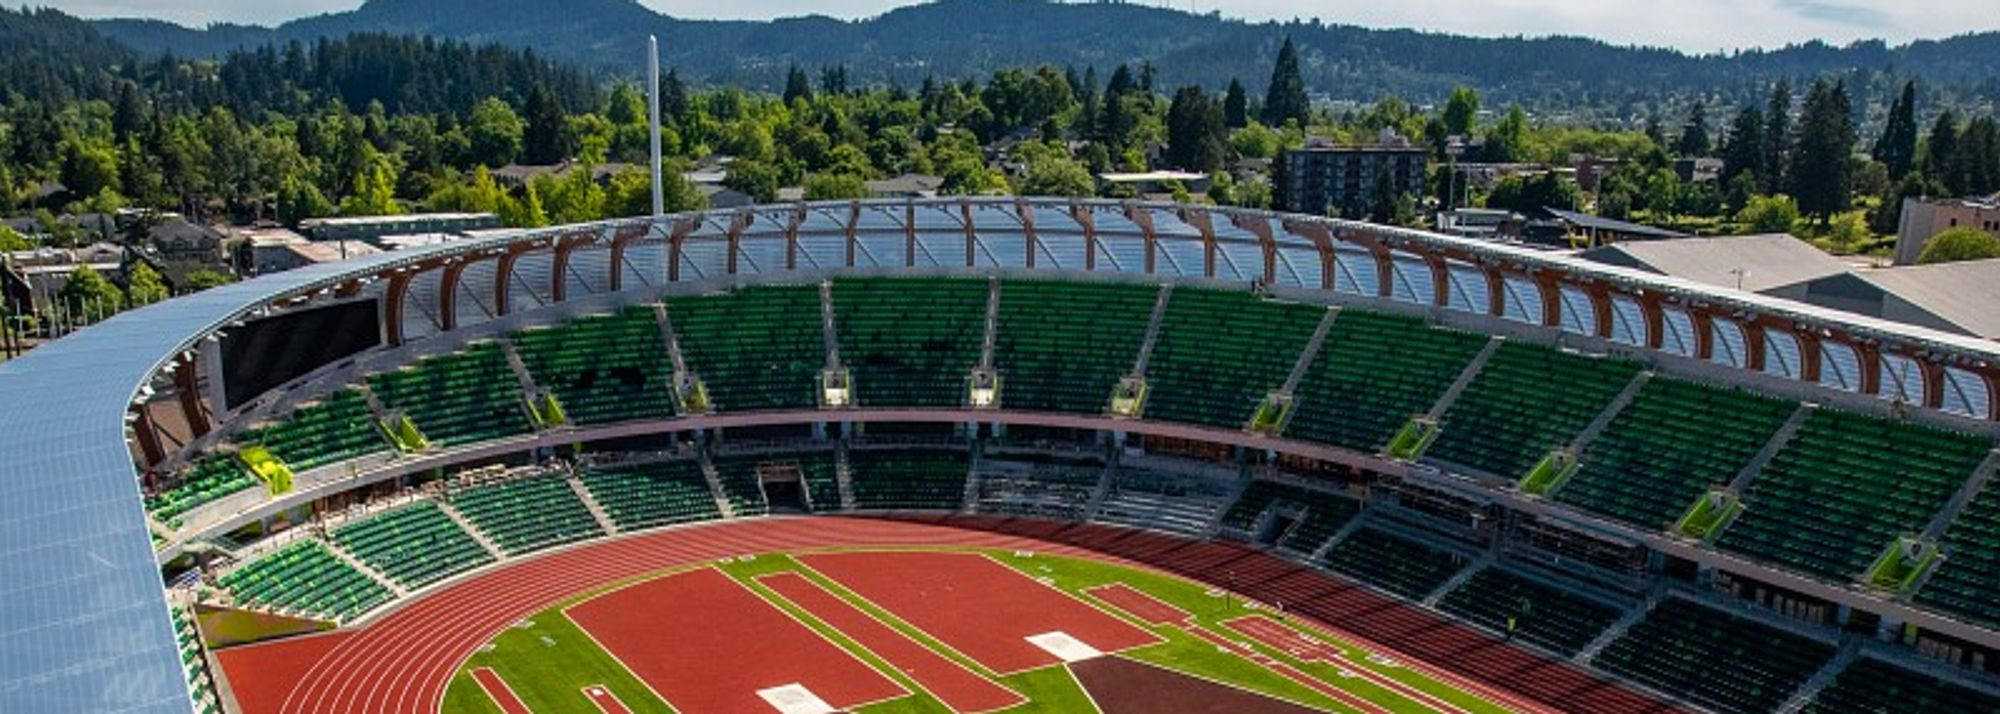 As Oregon track and field head coach Robert Johnson highlighted during this week's behind the scenes reveal, Hayward Field at the University of Oregon has so much to offer that listing all its facilities is not a quick job.